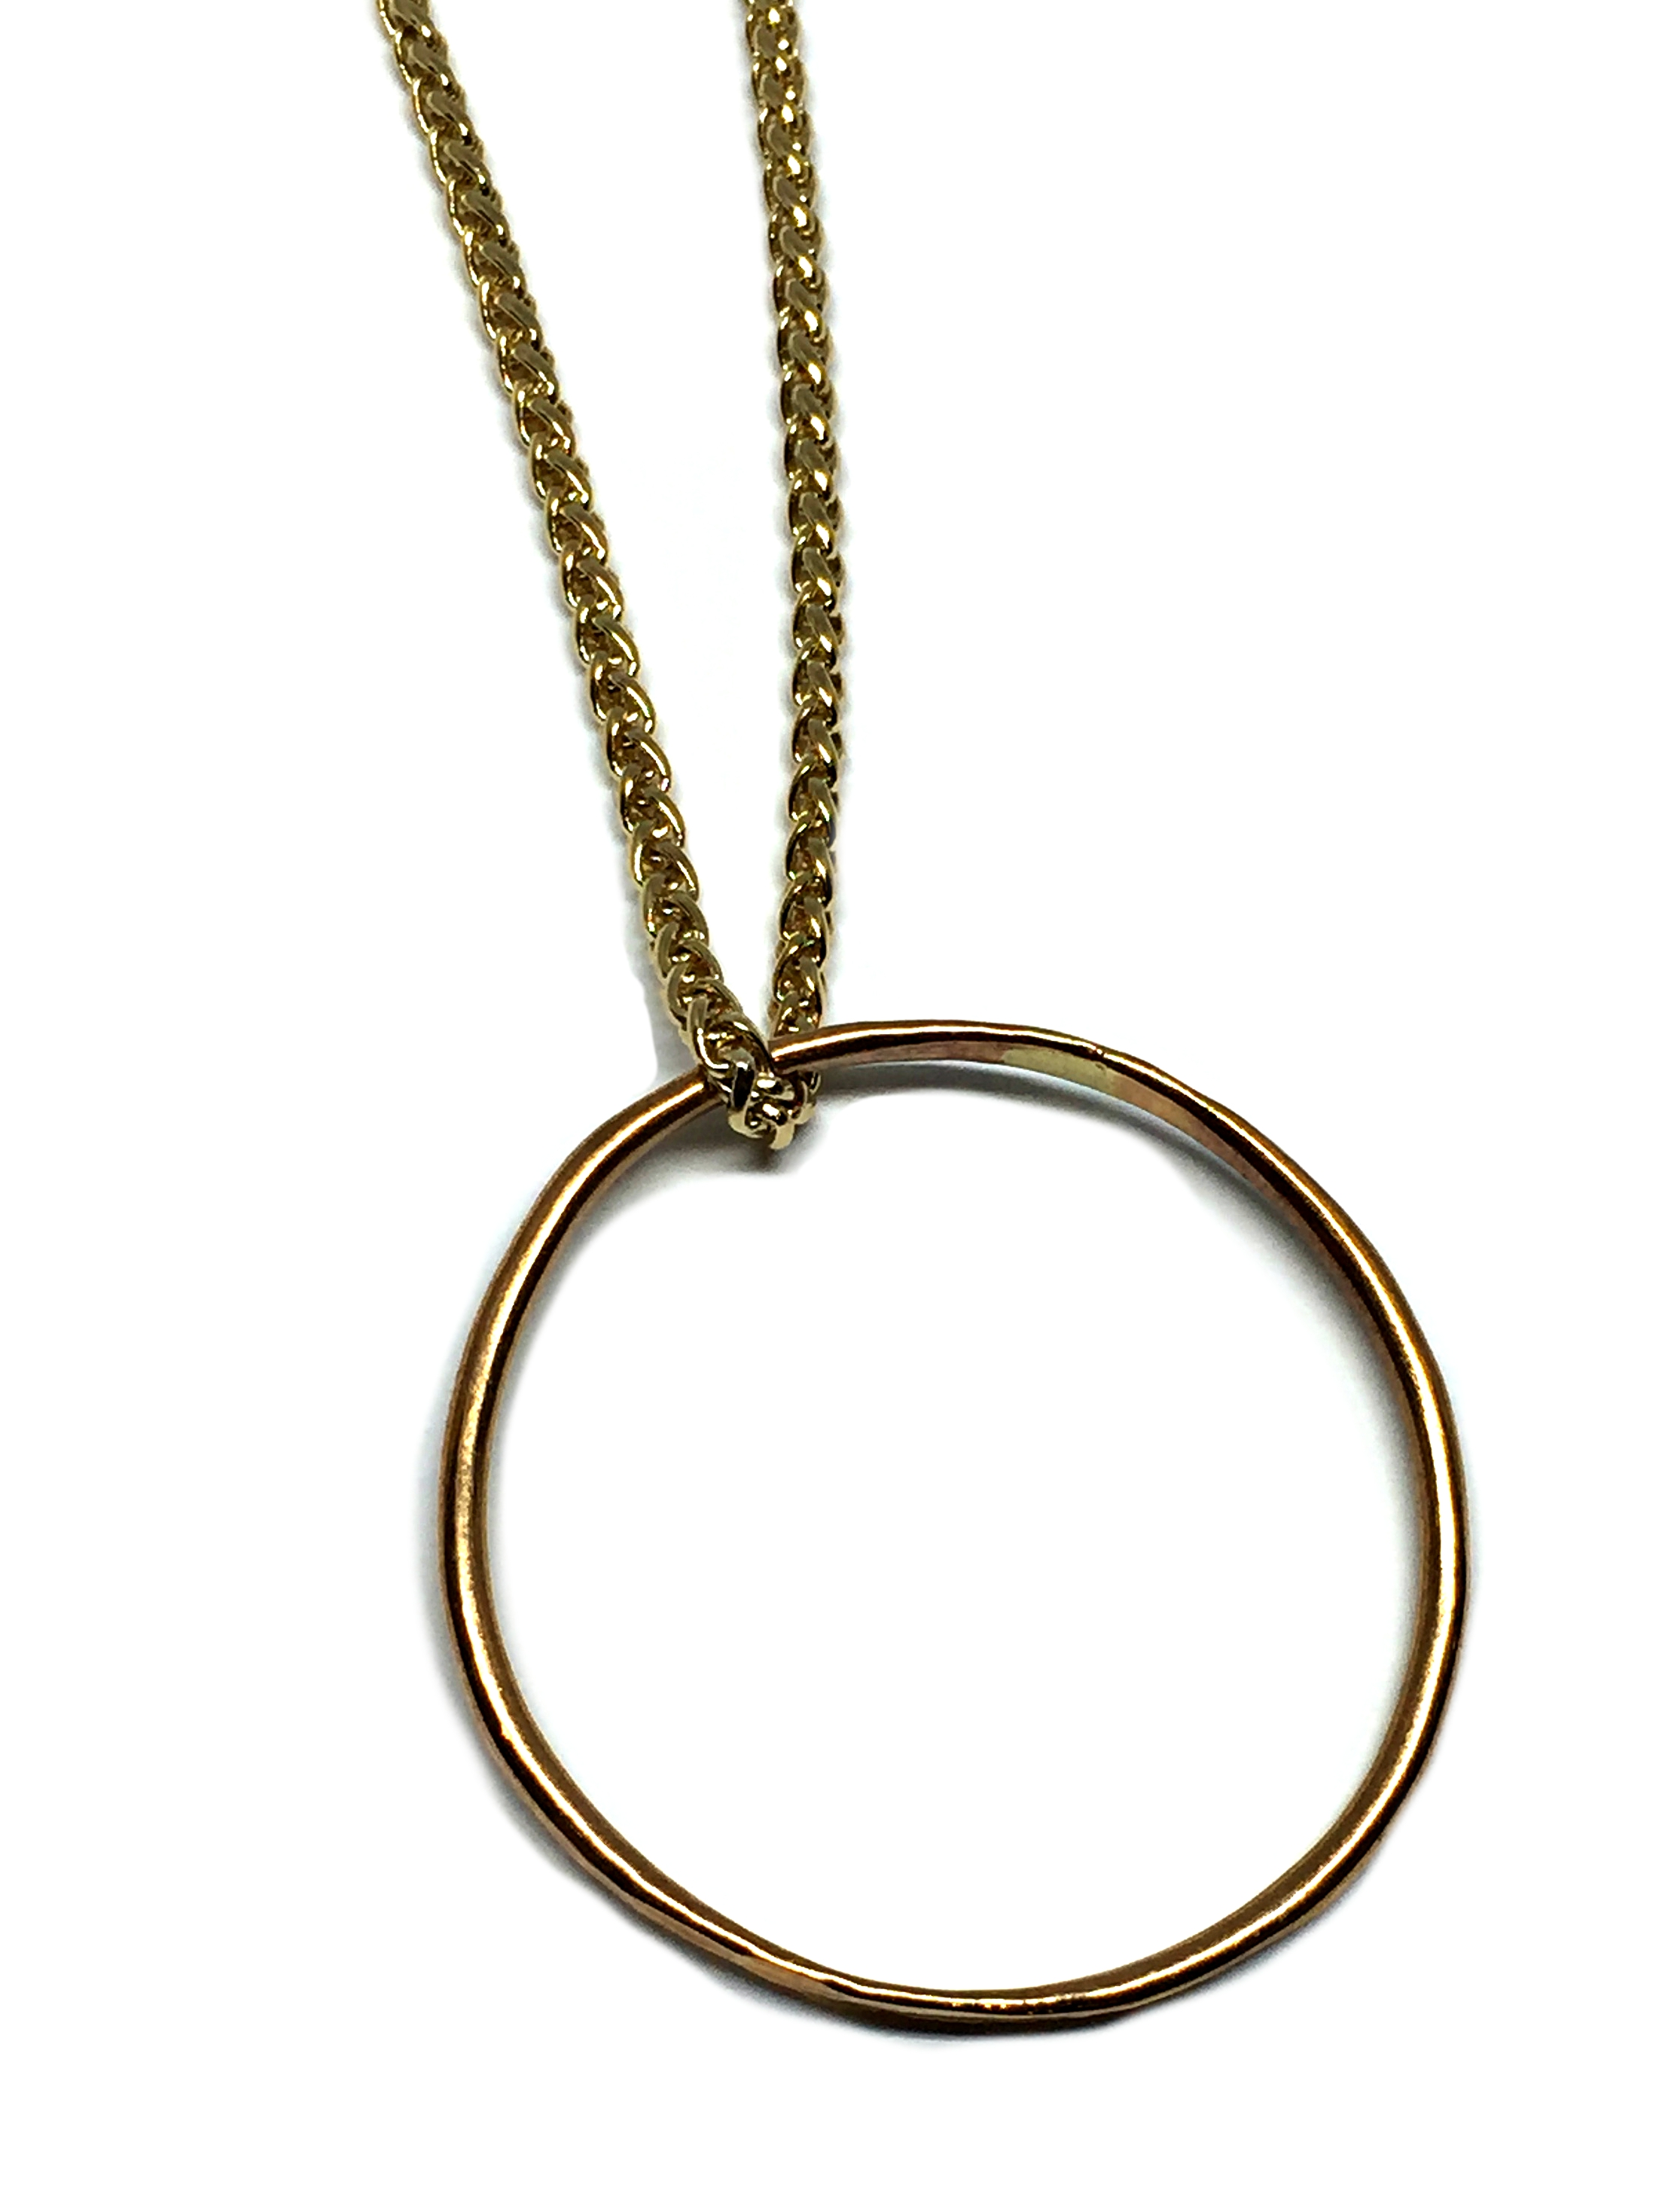 Bronze Sculpted Ring Pendant by Karyn Chopik | Effusion Art Gallery + Cast Glass Studio, Invermere BC